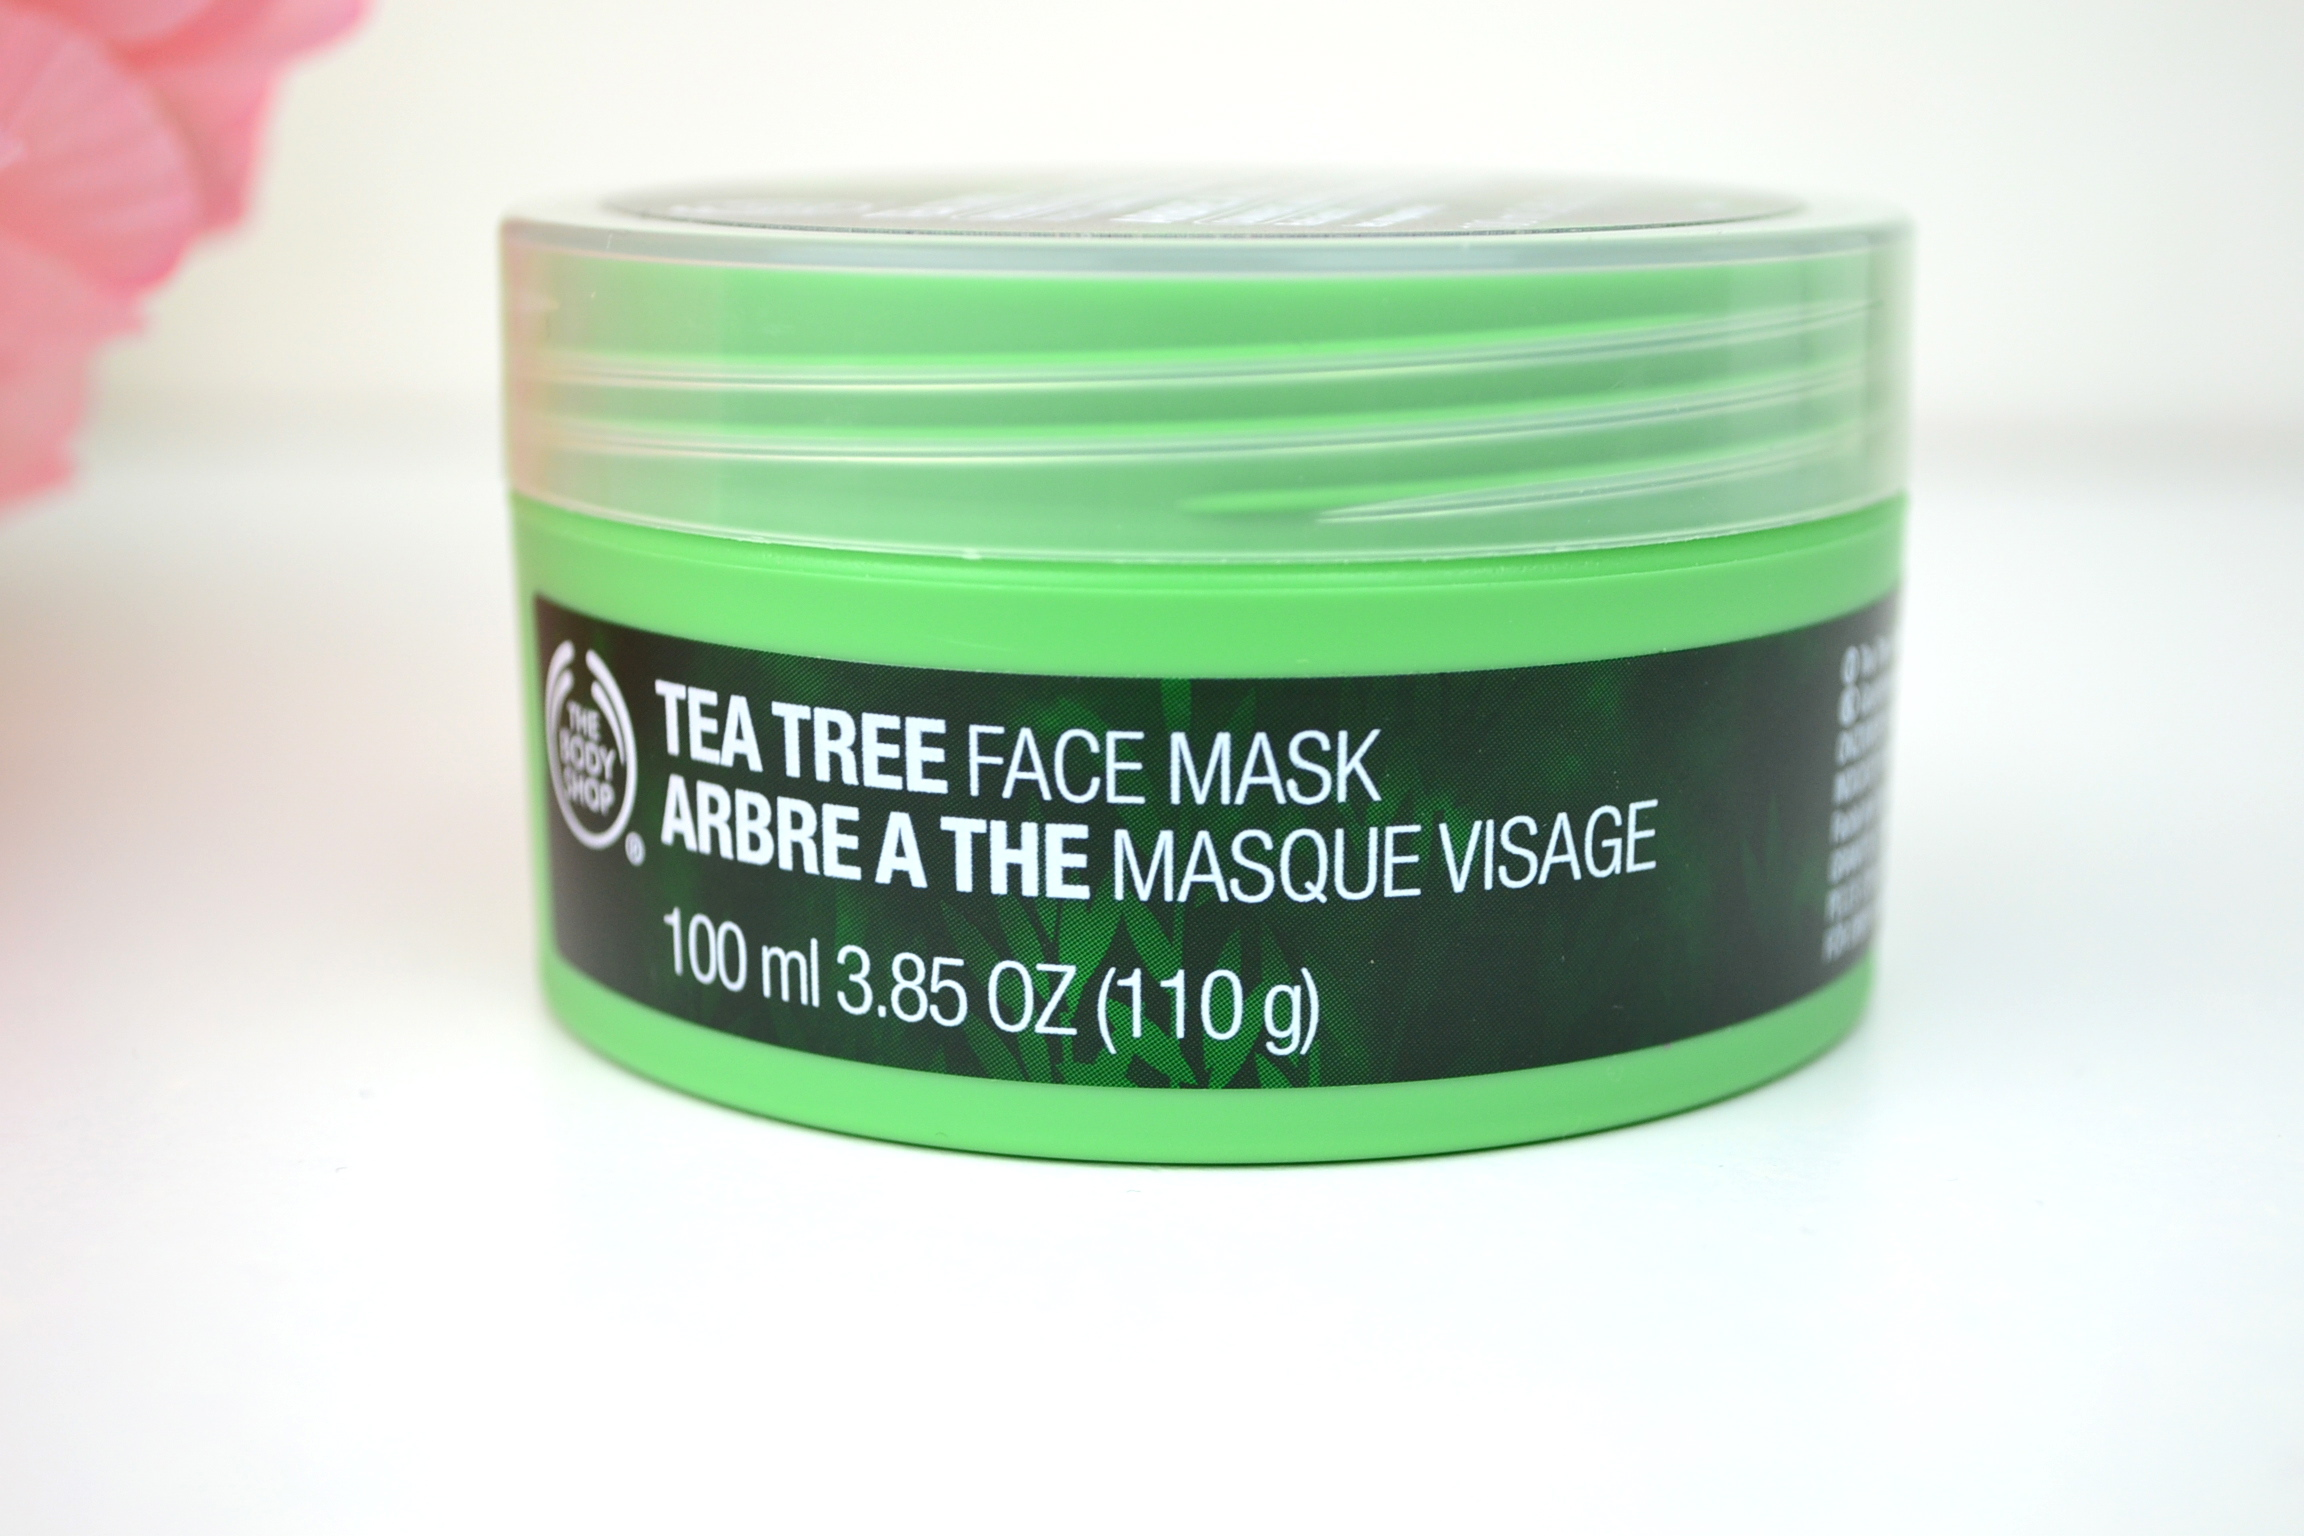 The Body Shop Tea Tree Face Mask